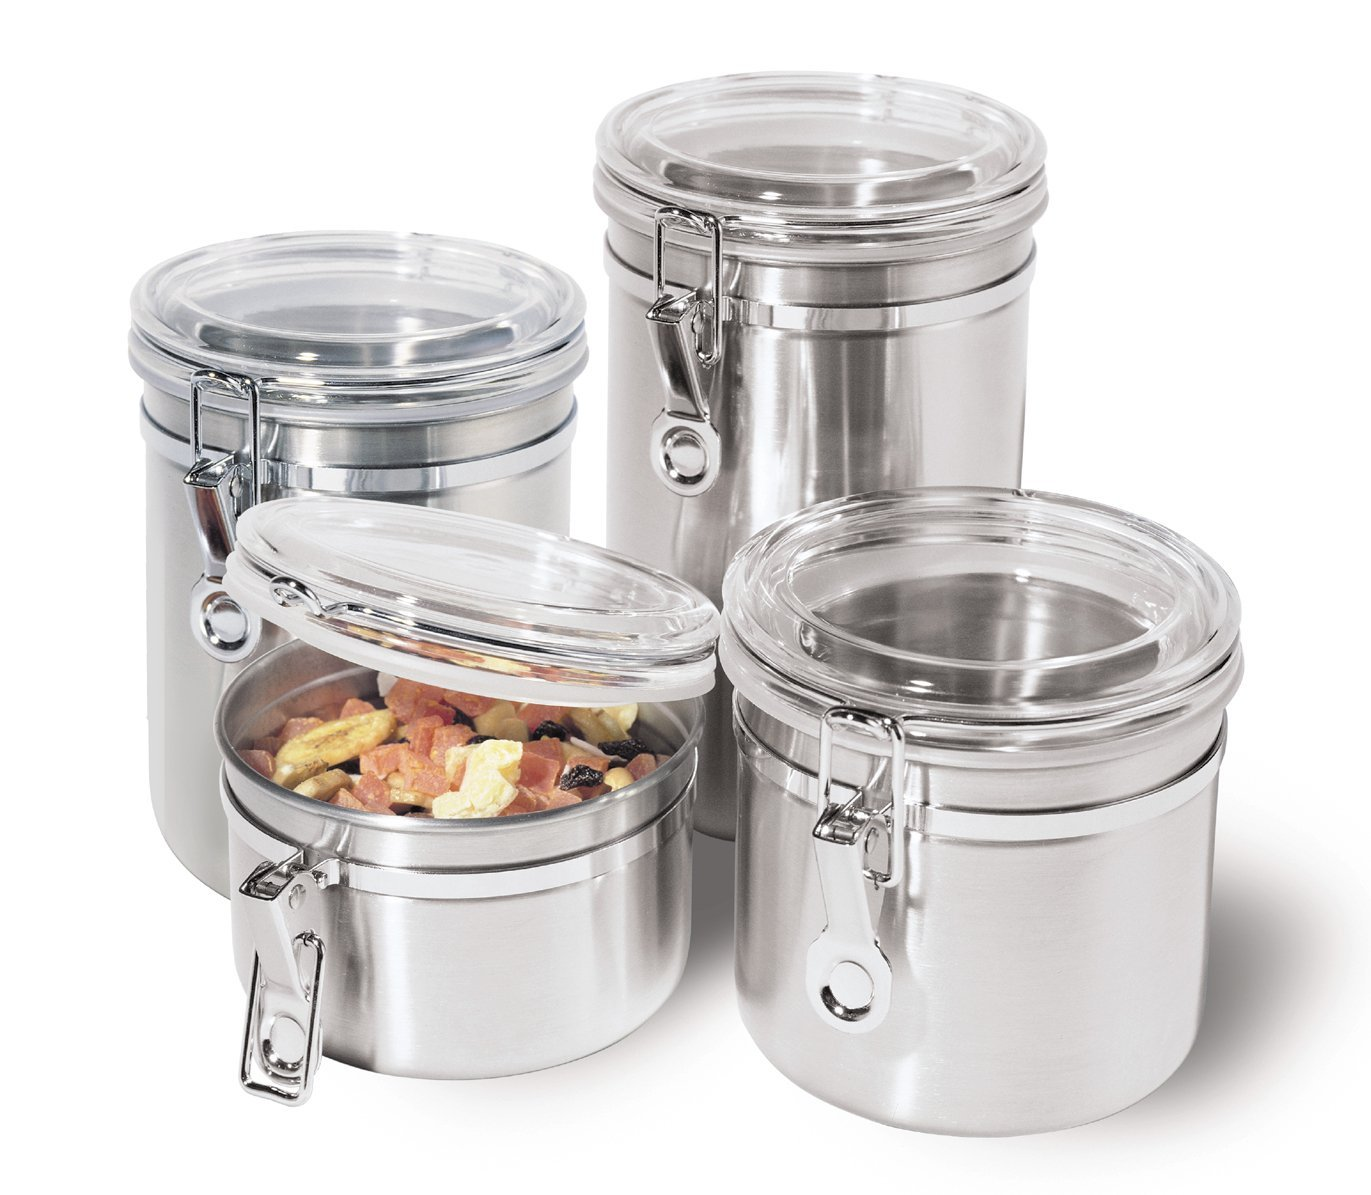 Oggi 4 Pc Stainless Steel Canister Jar Container Set w/ Airtight Lid Ideas For Clear Kitchen Canisters on clear canisters in food, clear stools for kitchen, clear canisters with lids, canister sets for kitchen, spray paint a tray for kitchen, clear plastic kitchen canisters, acrylic canister sets kitchen,